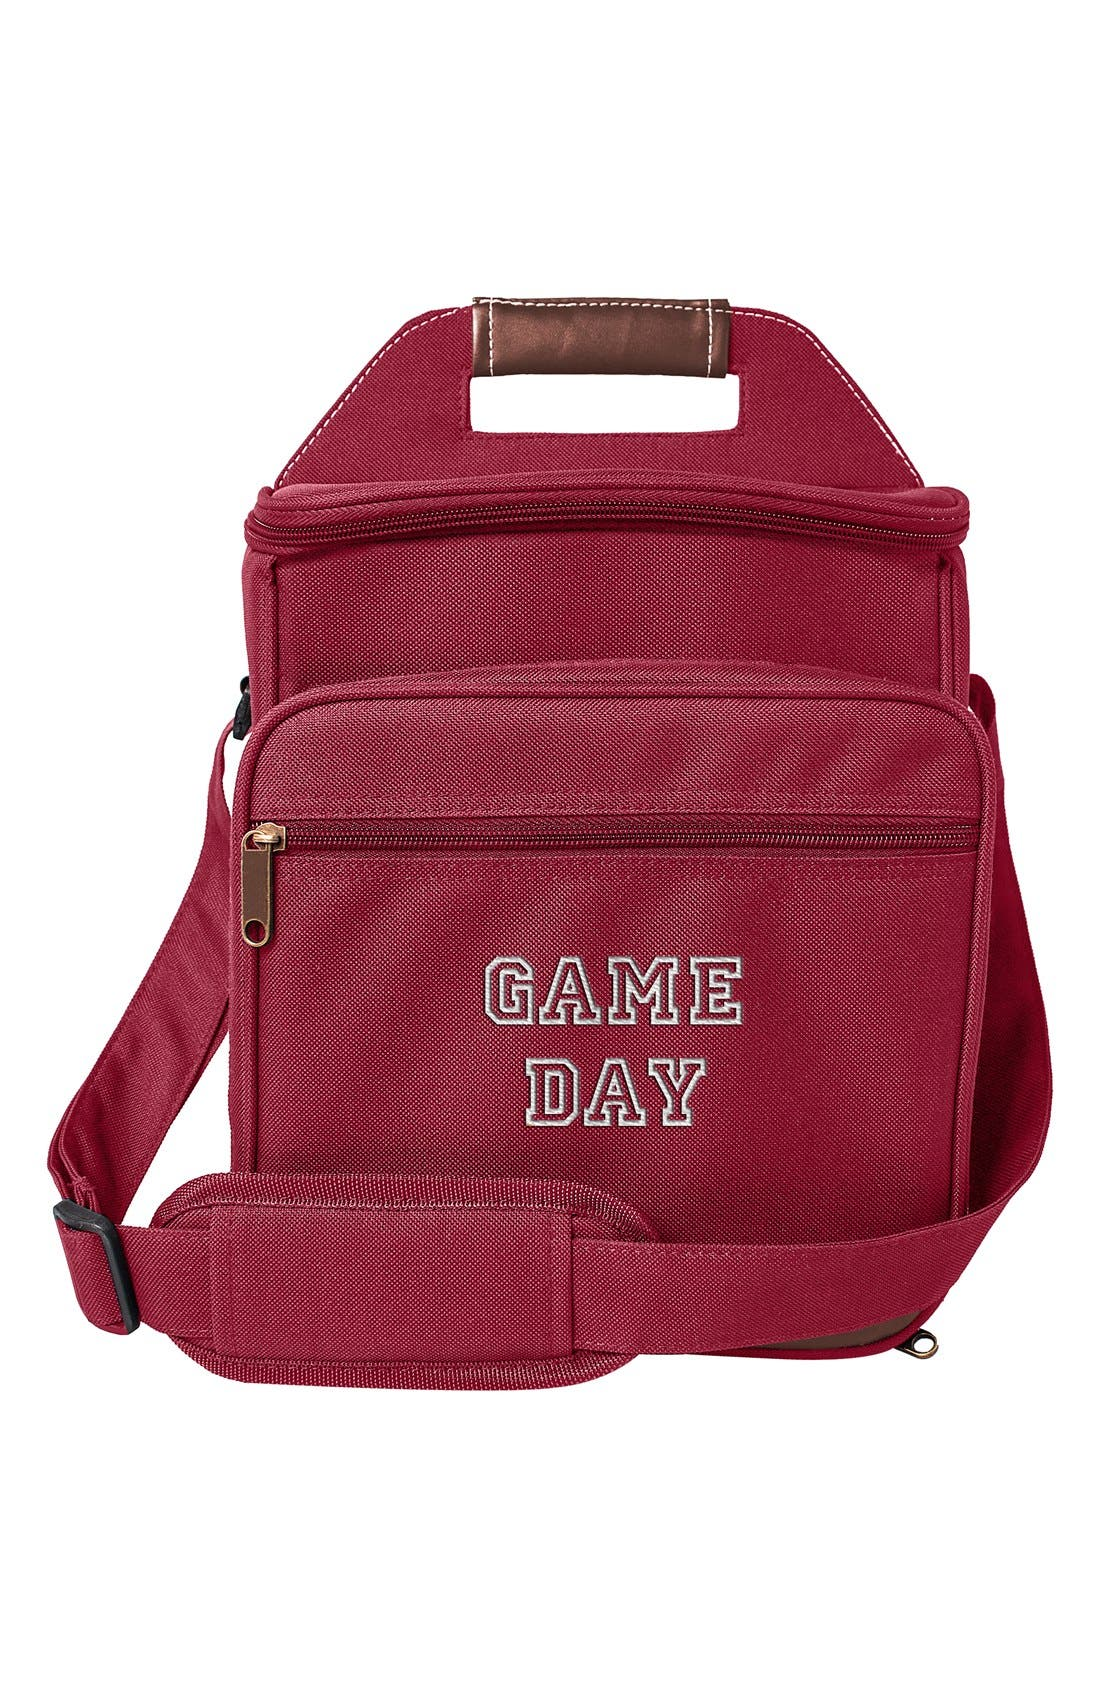 'Game Day' Picnic Cooler Set,                         Main,                         color, Red